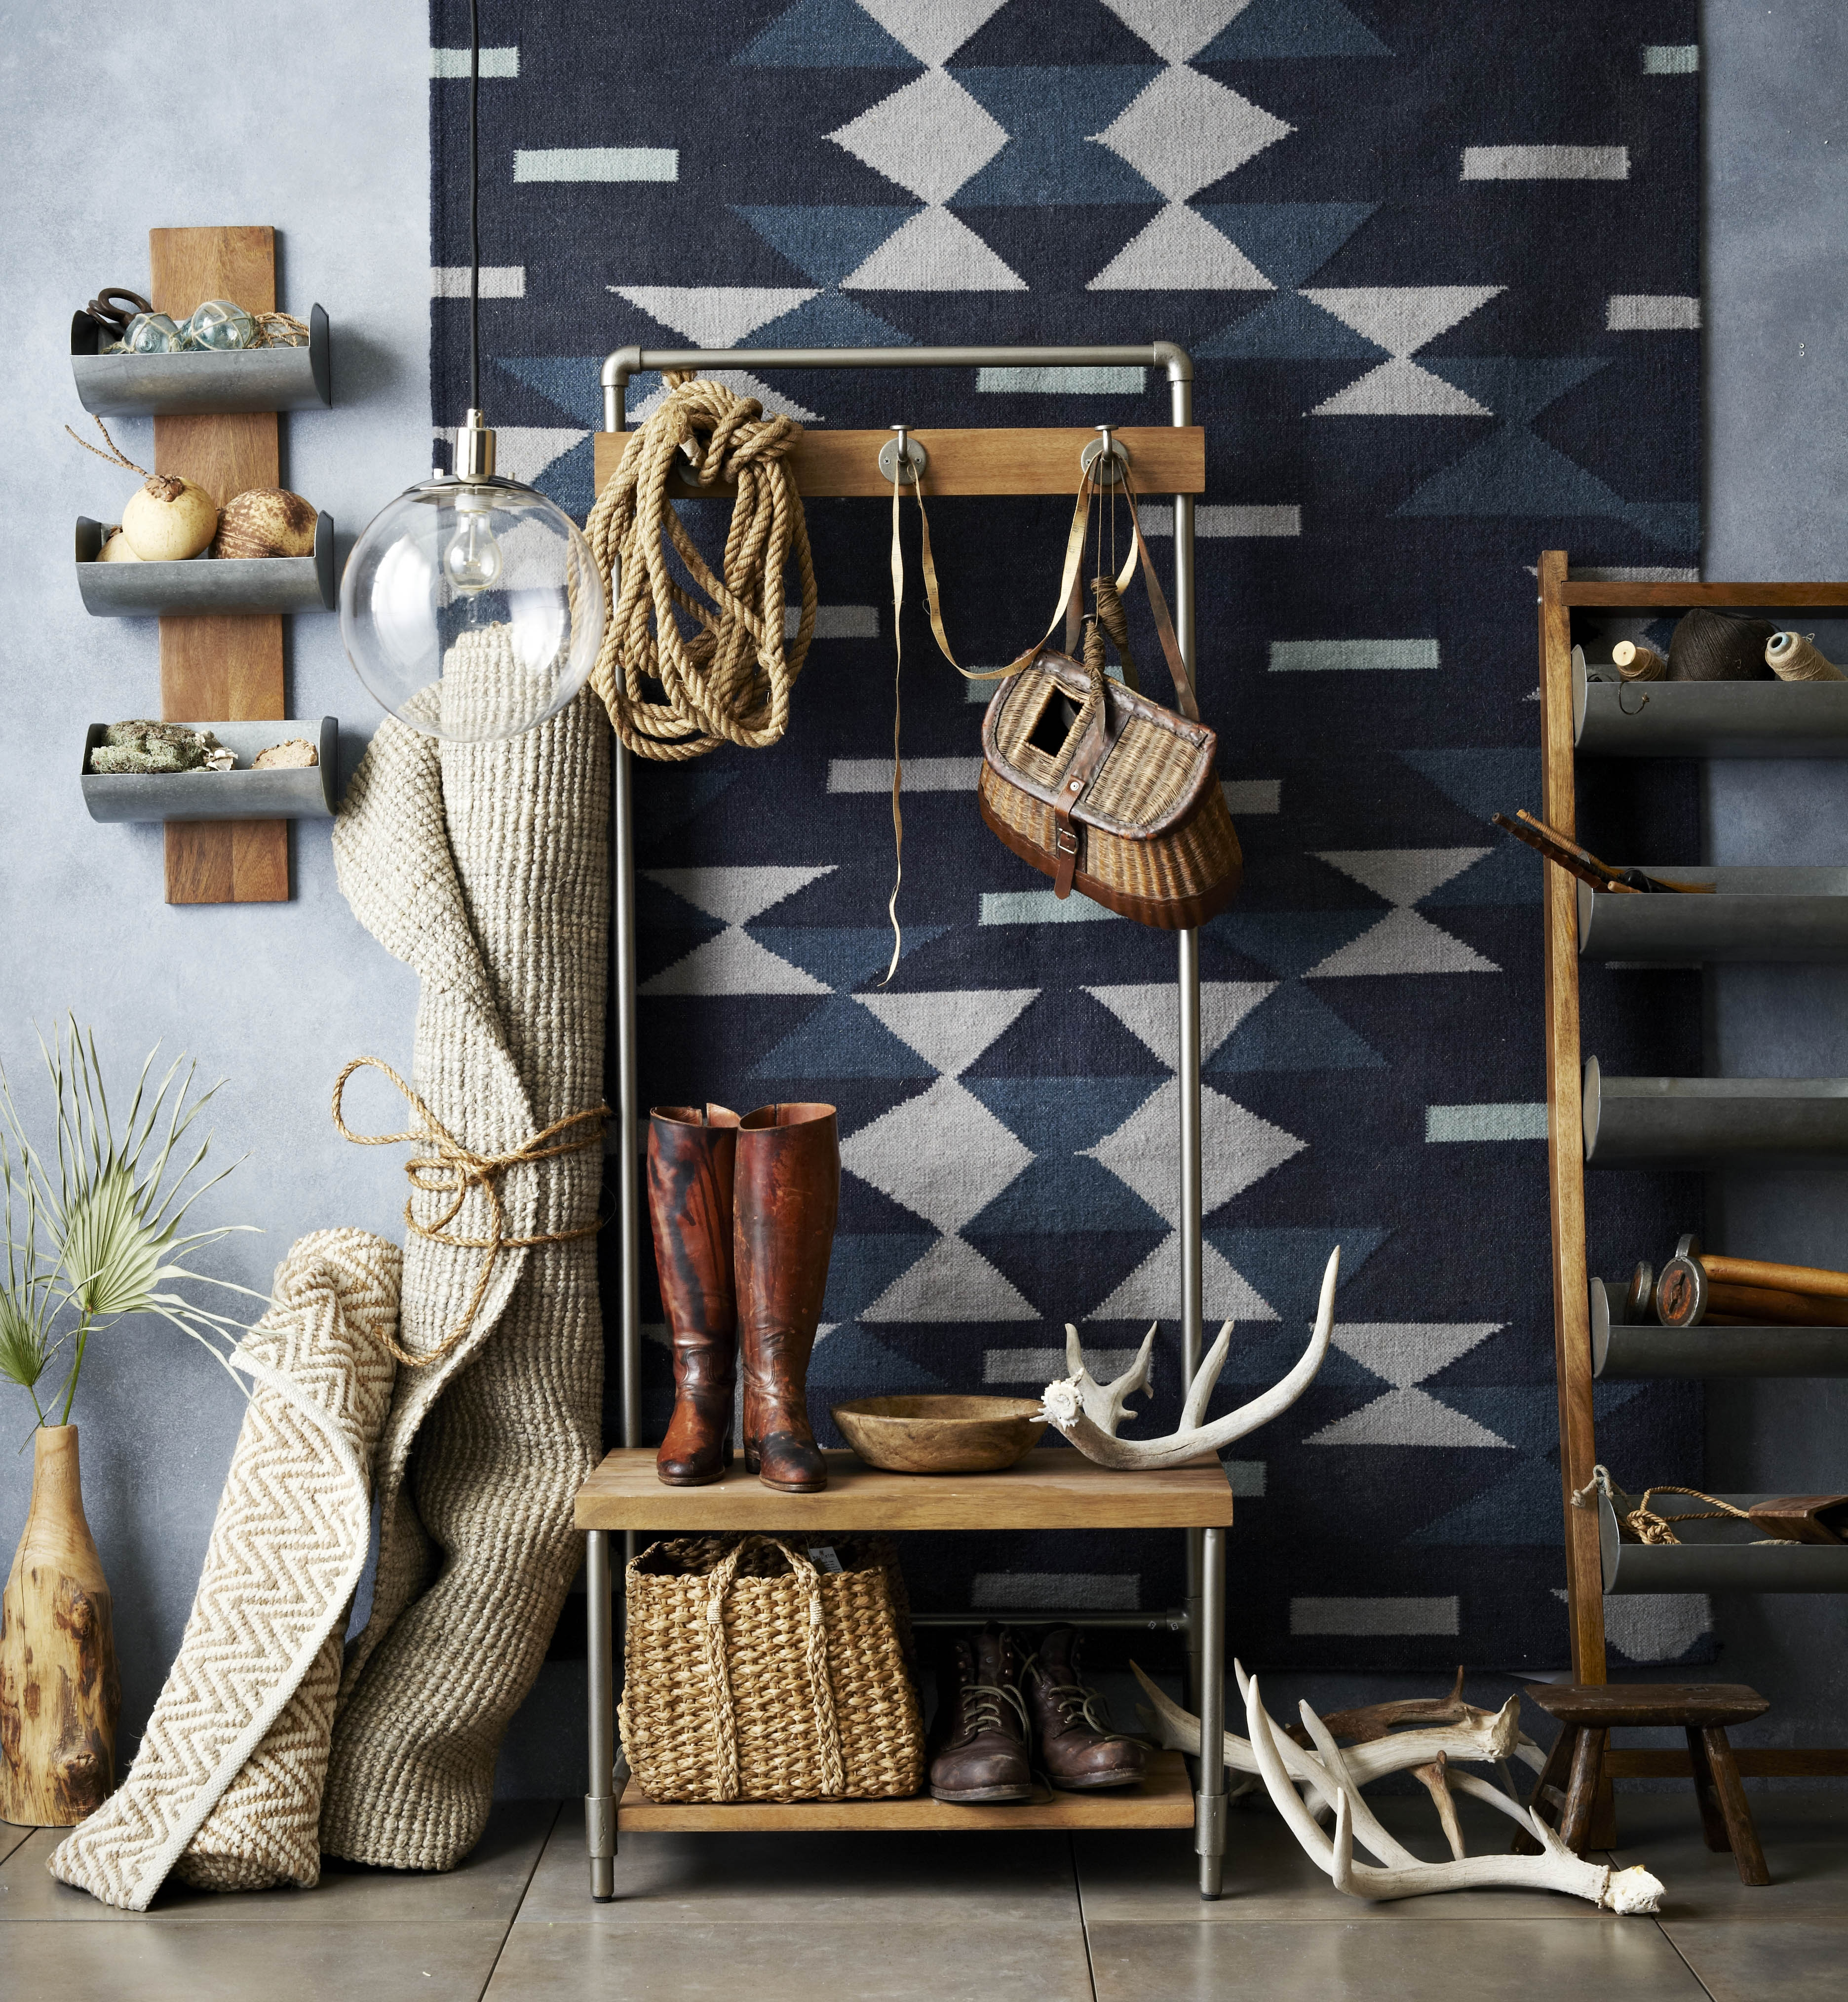 West elm collection new designs that define - We Love West Elm And Miac Collaboration